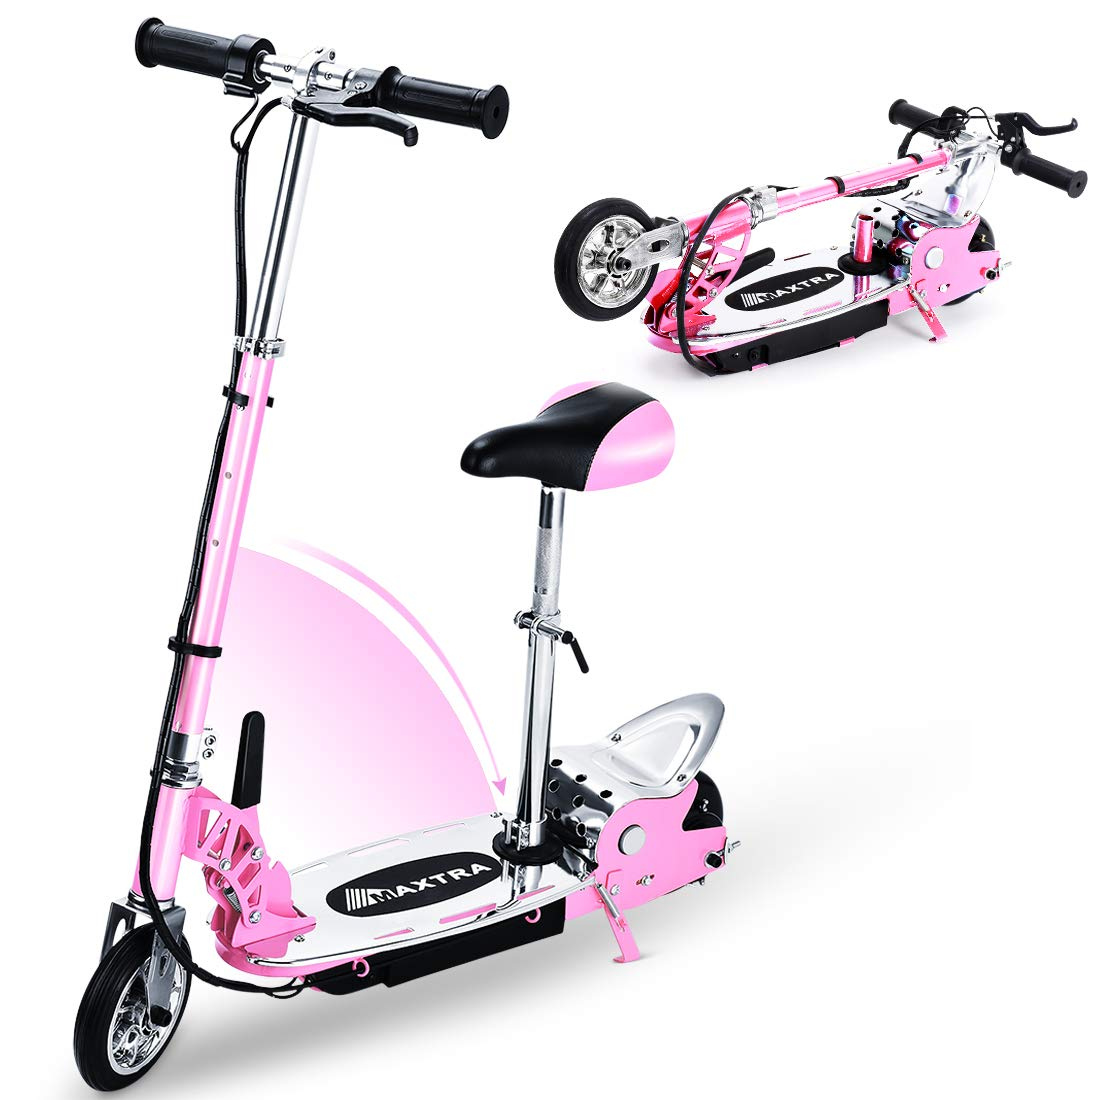 Overwhelming Upgrade E120 Adjustable Handlebar Height and Seat Folding Electric Scooter with Removable Seat for Kids,177lbs Max Weight Capacity Motorized Bike, up to 10 mph - Pink by Overwhelming